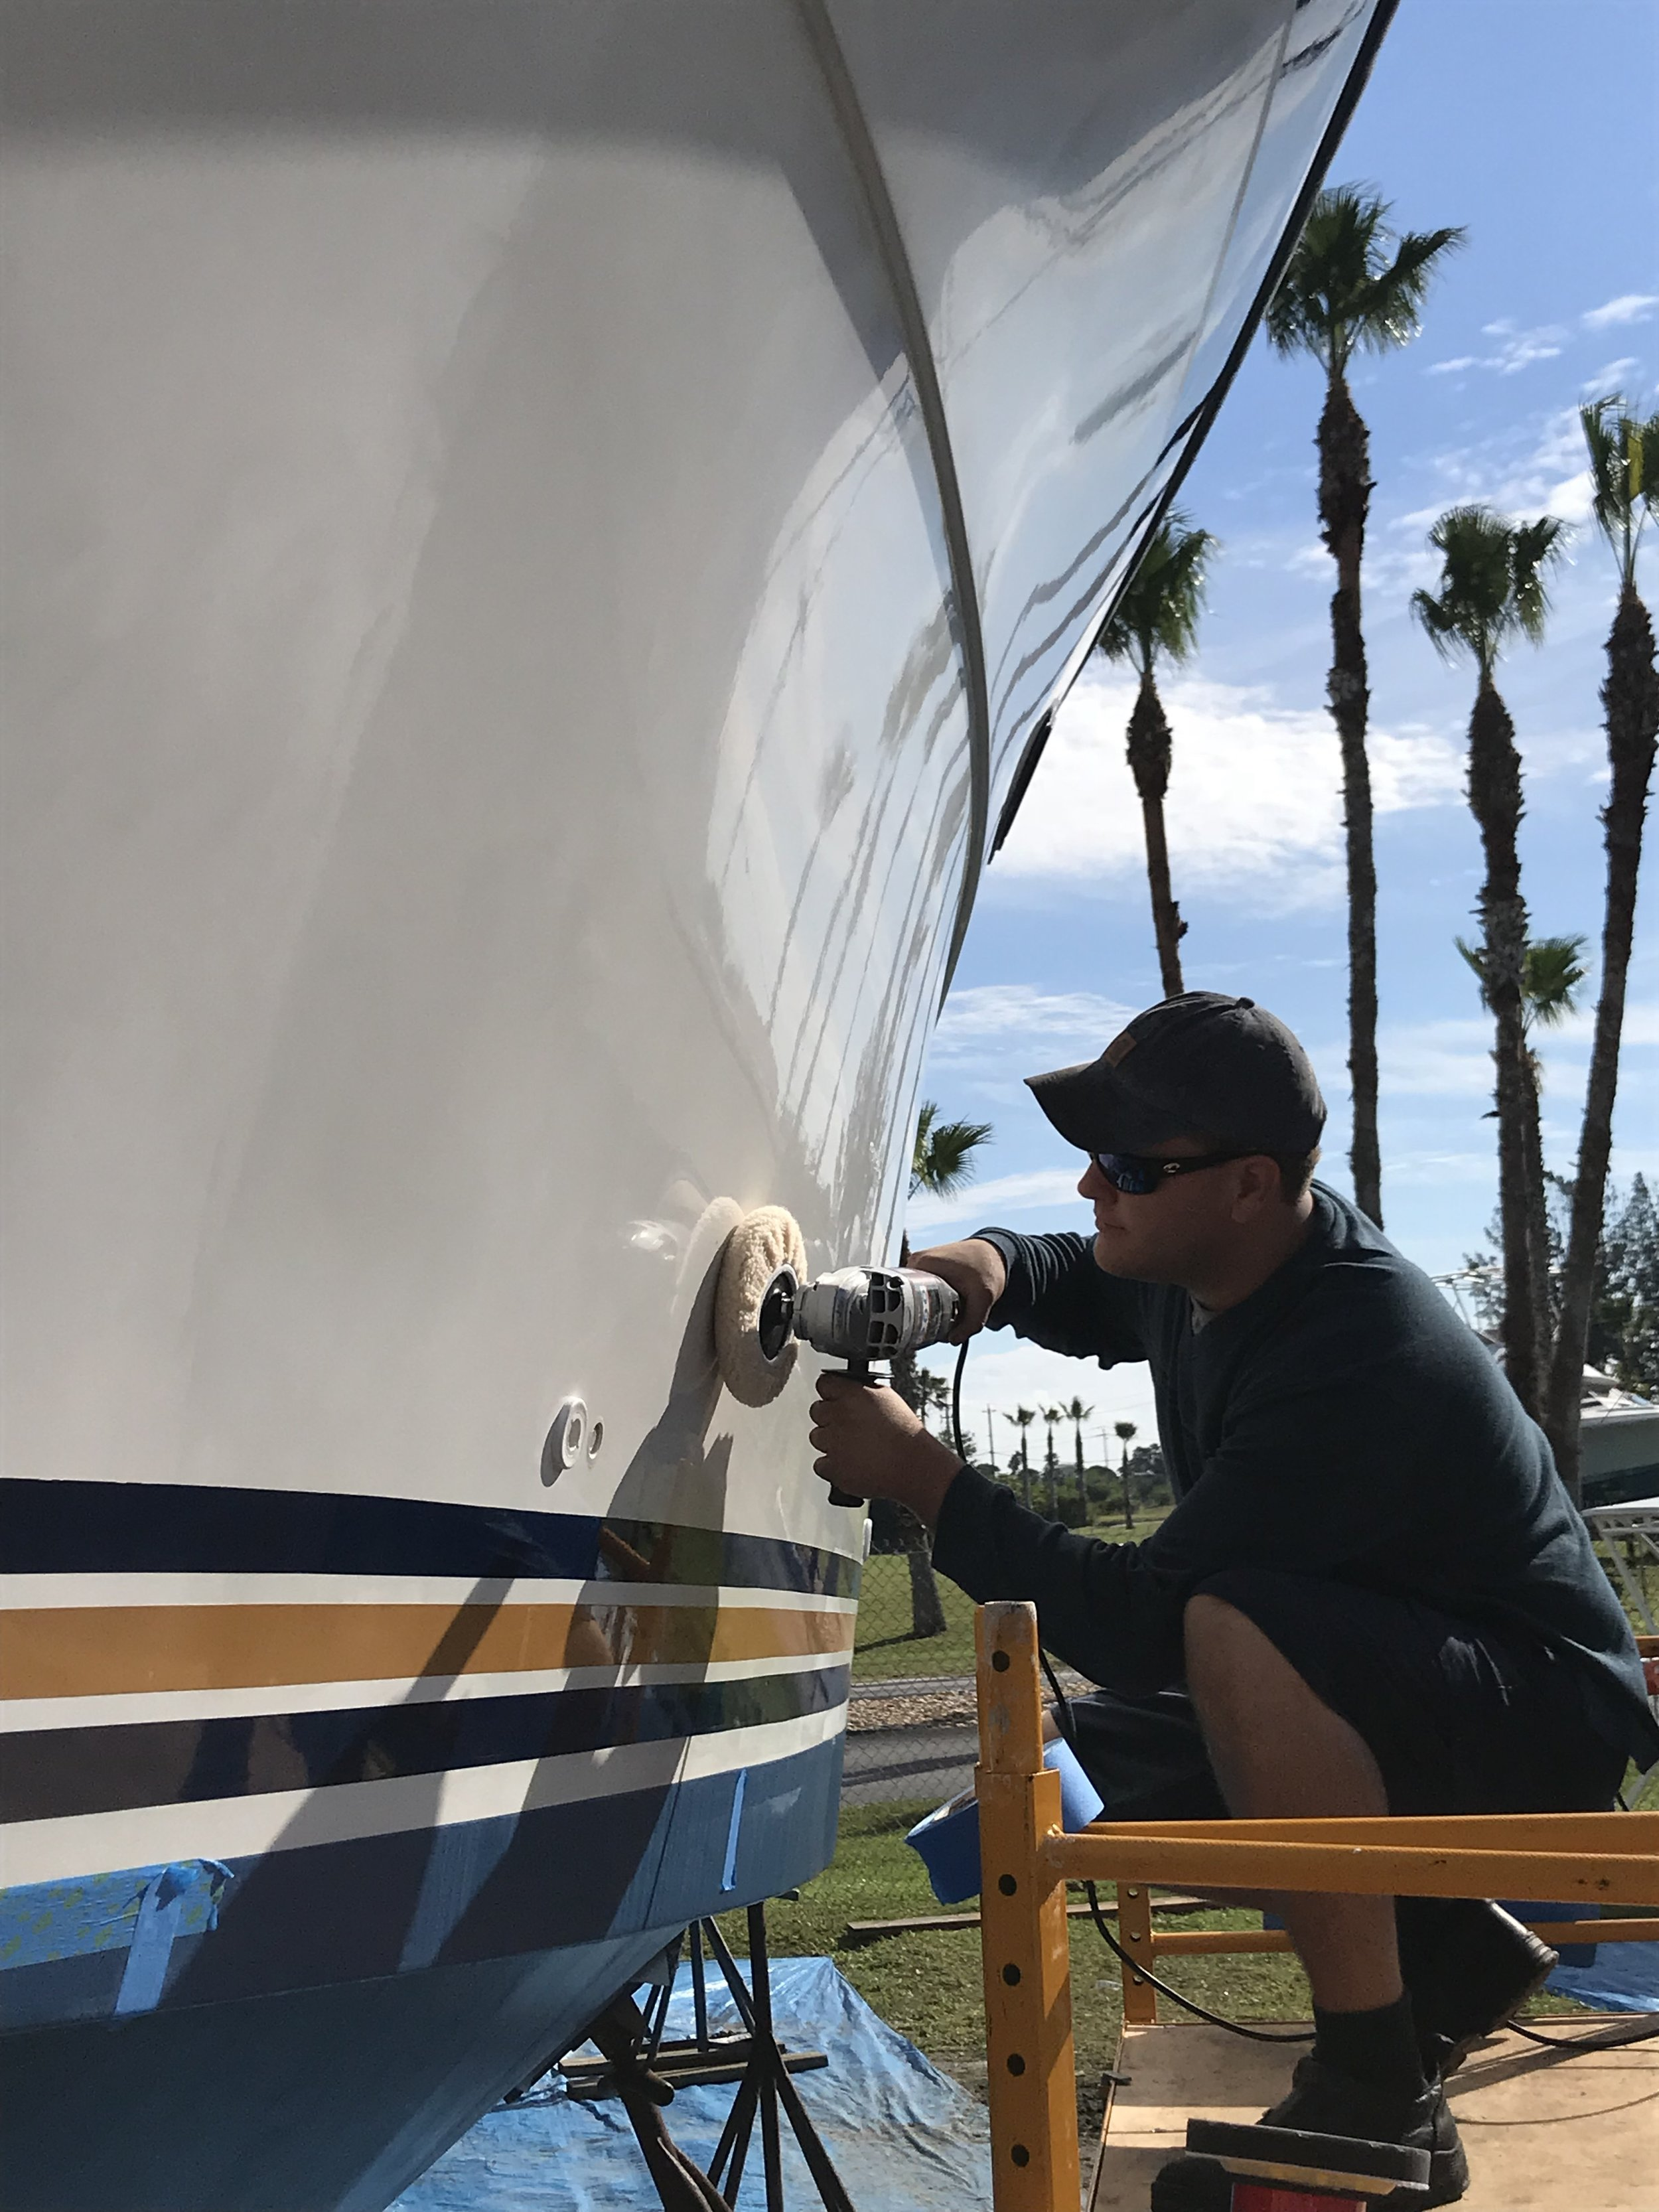 Boat Yacht Detailing, Cleaning, Polishing and Waxing